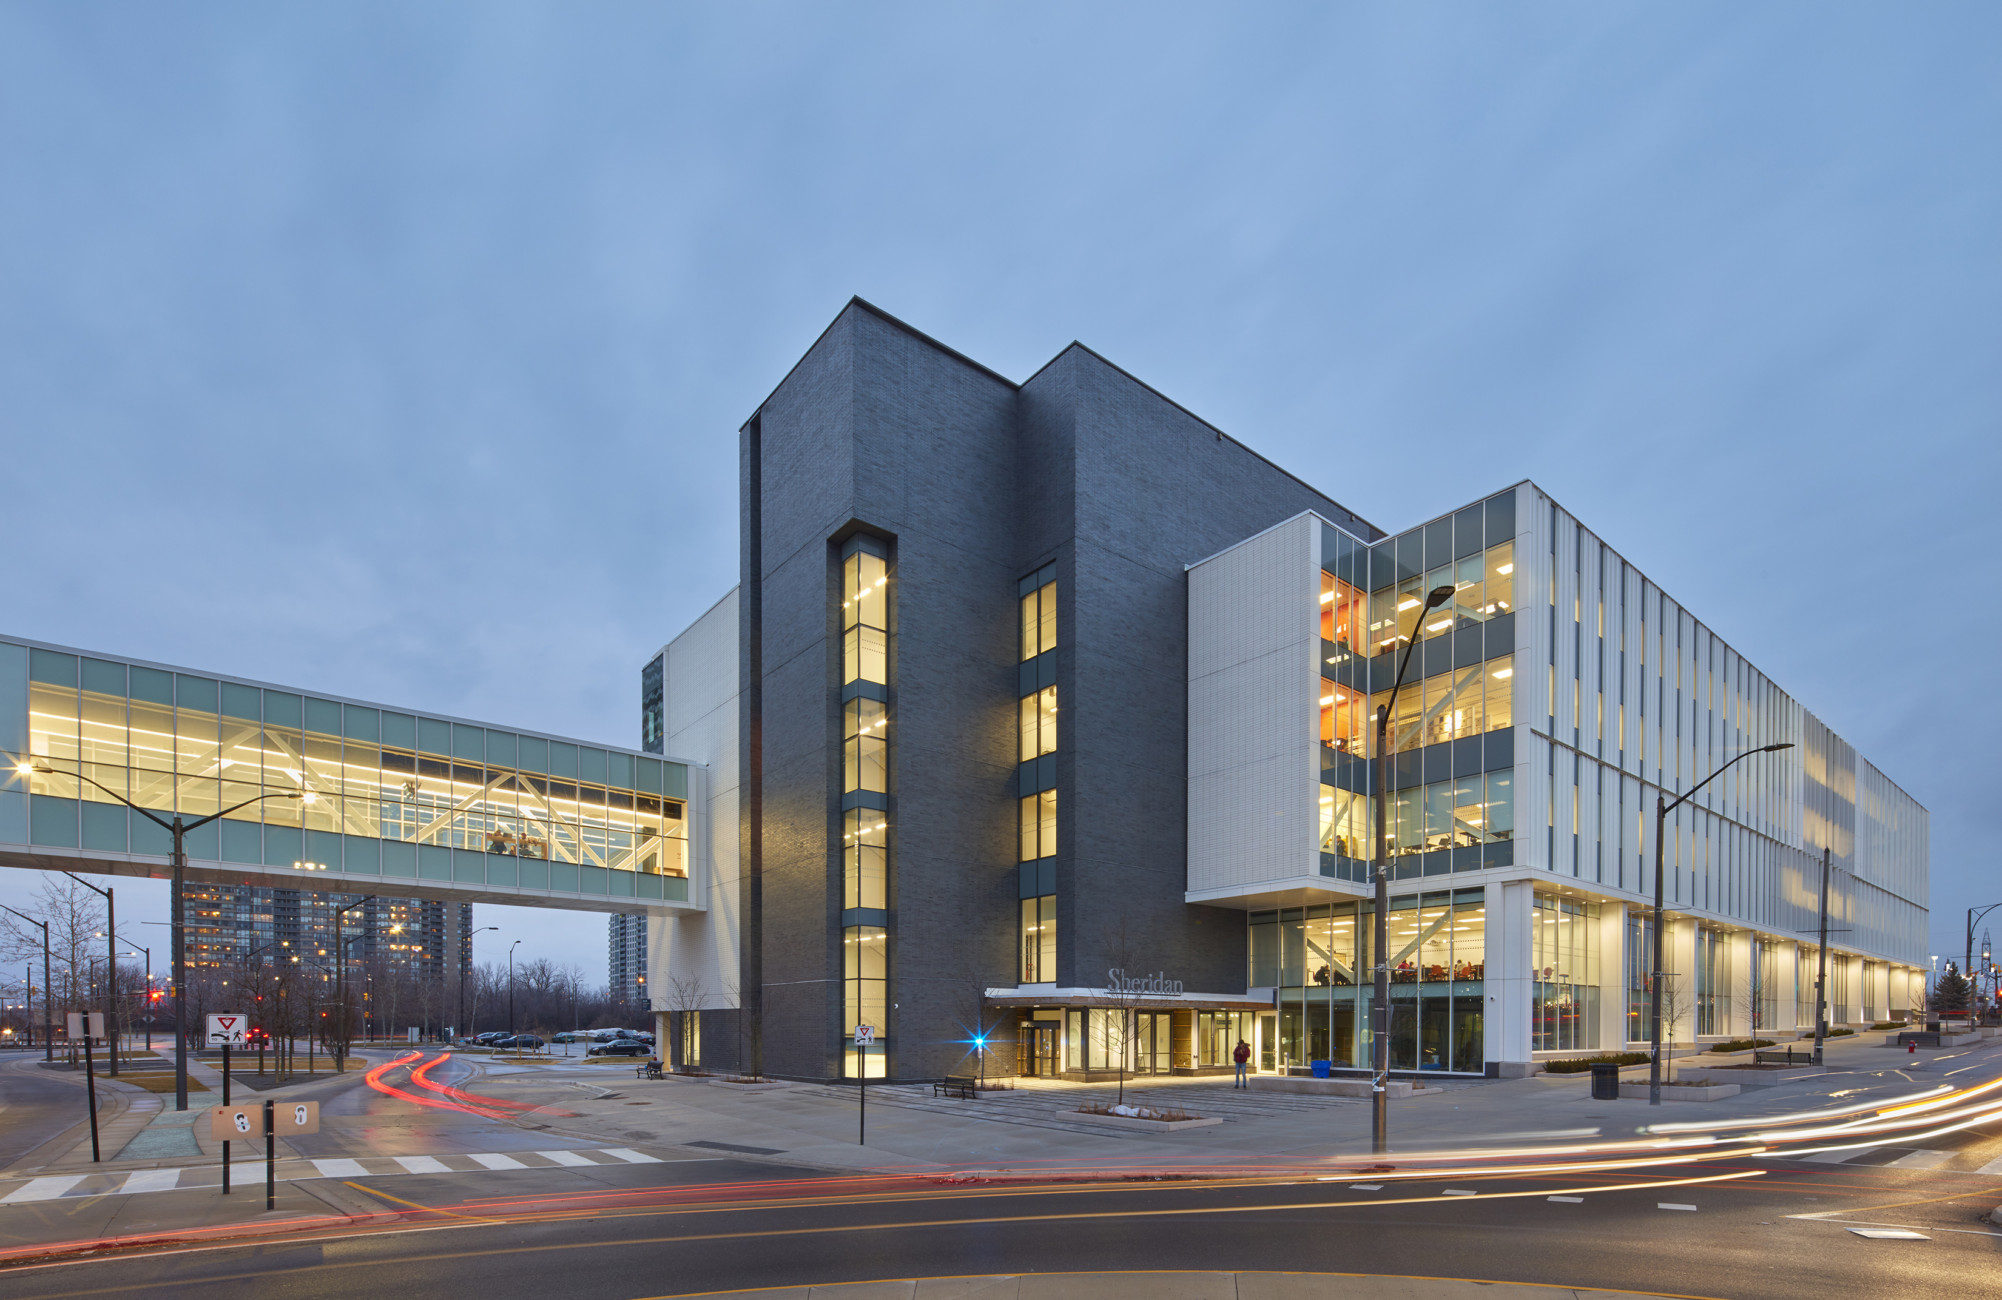 http://mtarch.com/projects/hazel-mccallion-campus-phase-2-building/